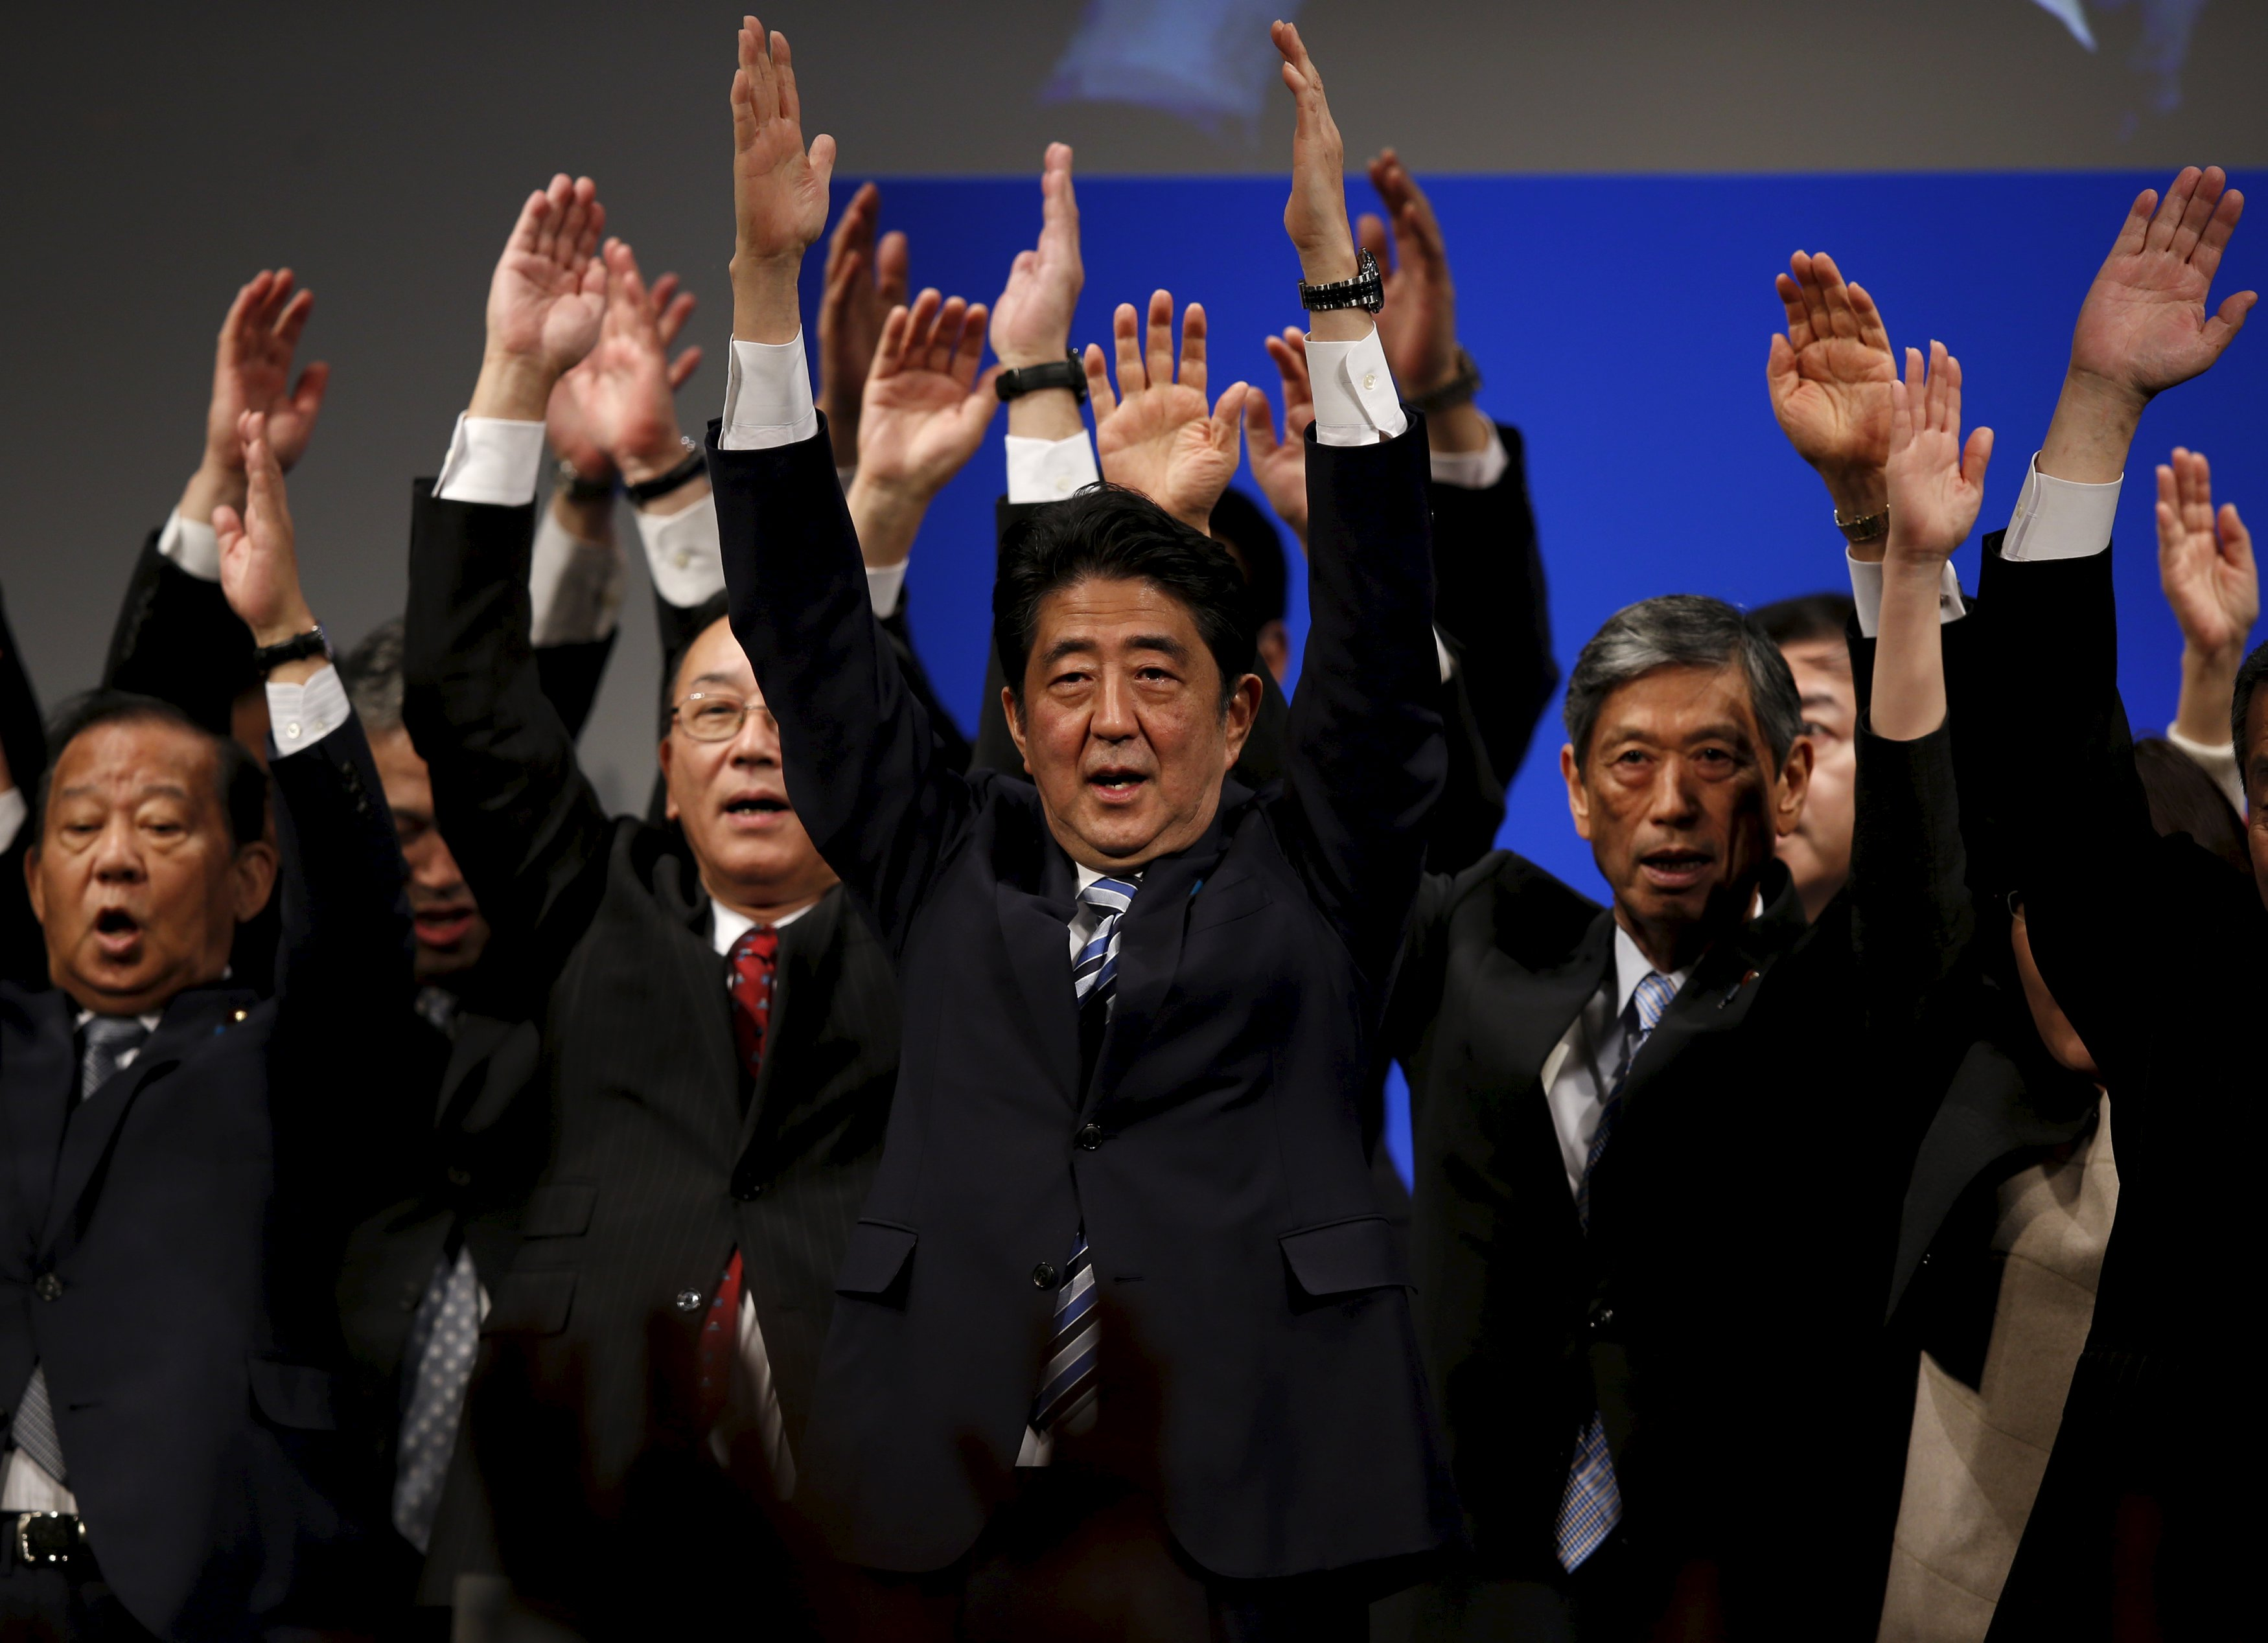 Prime Minister Shinzo Abe holds a banzai cheer with members of his Liberal Democratic Party in Tokyo on Sunday during a ceremony marking the party's 60th anniversary. | REUTERS